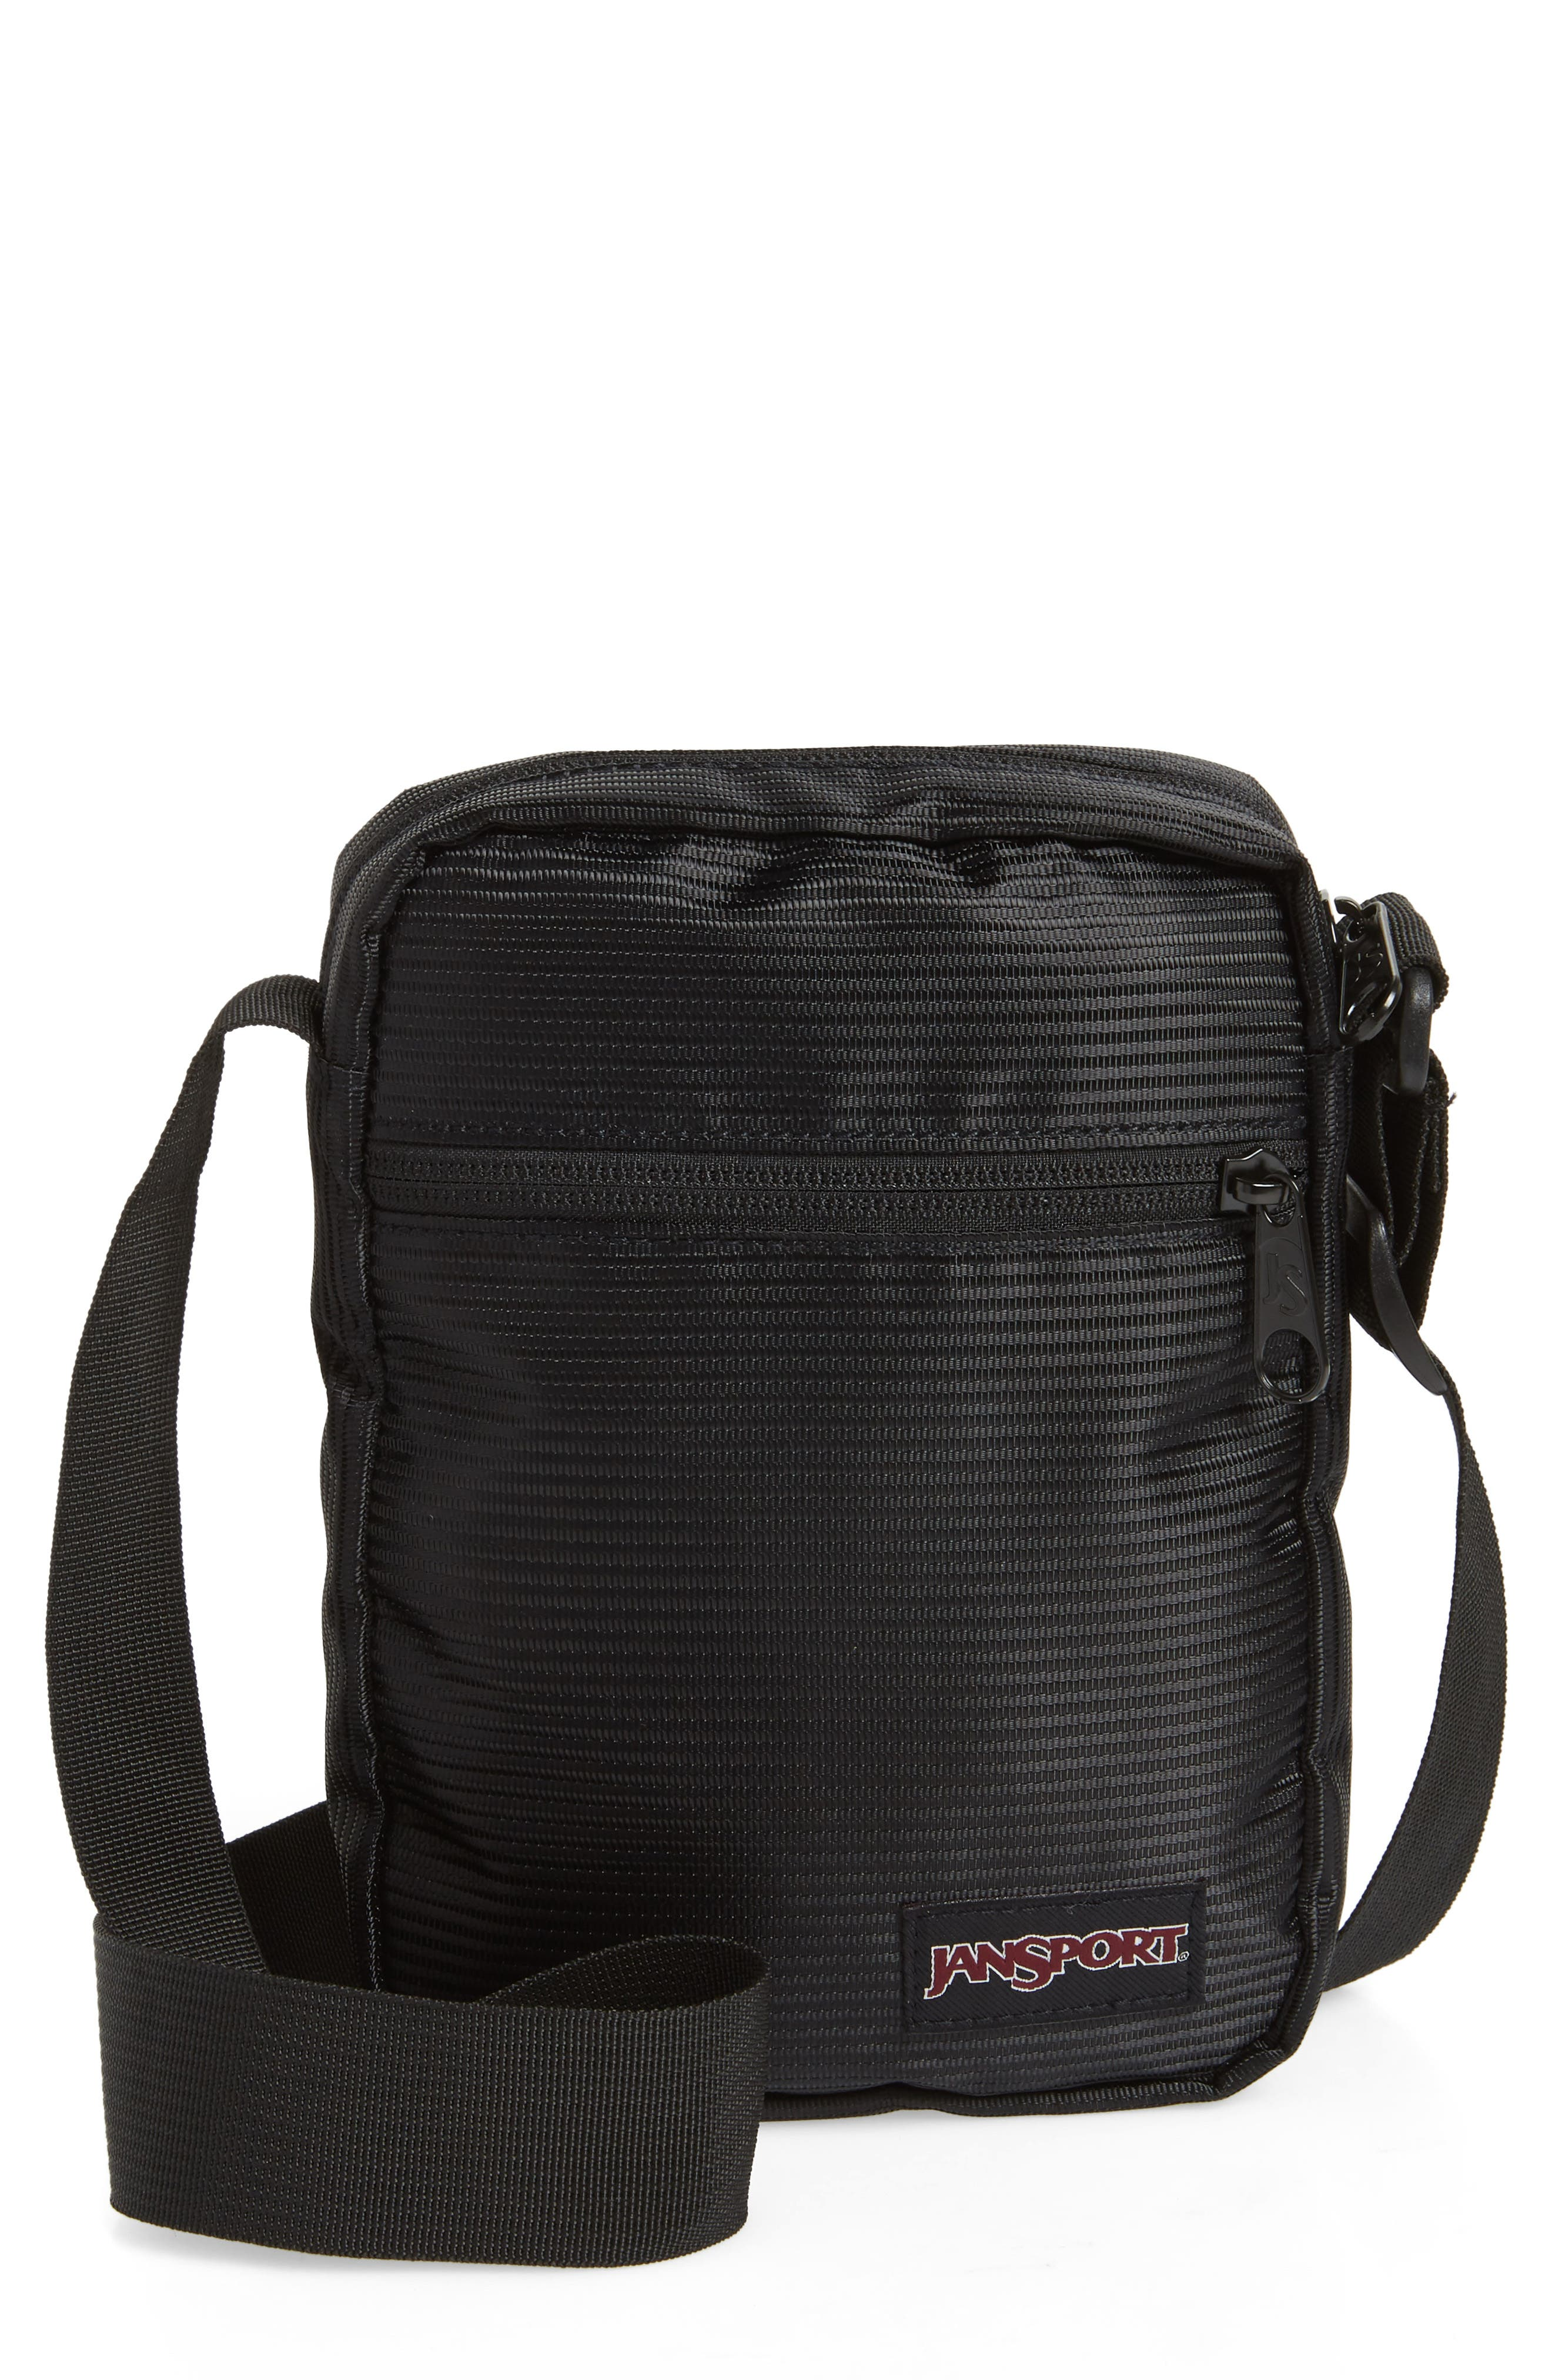 JANSPORT CROSSBODY FX BAG - BLACK